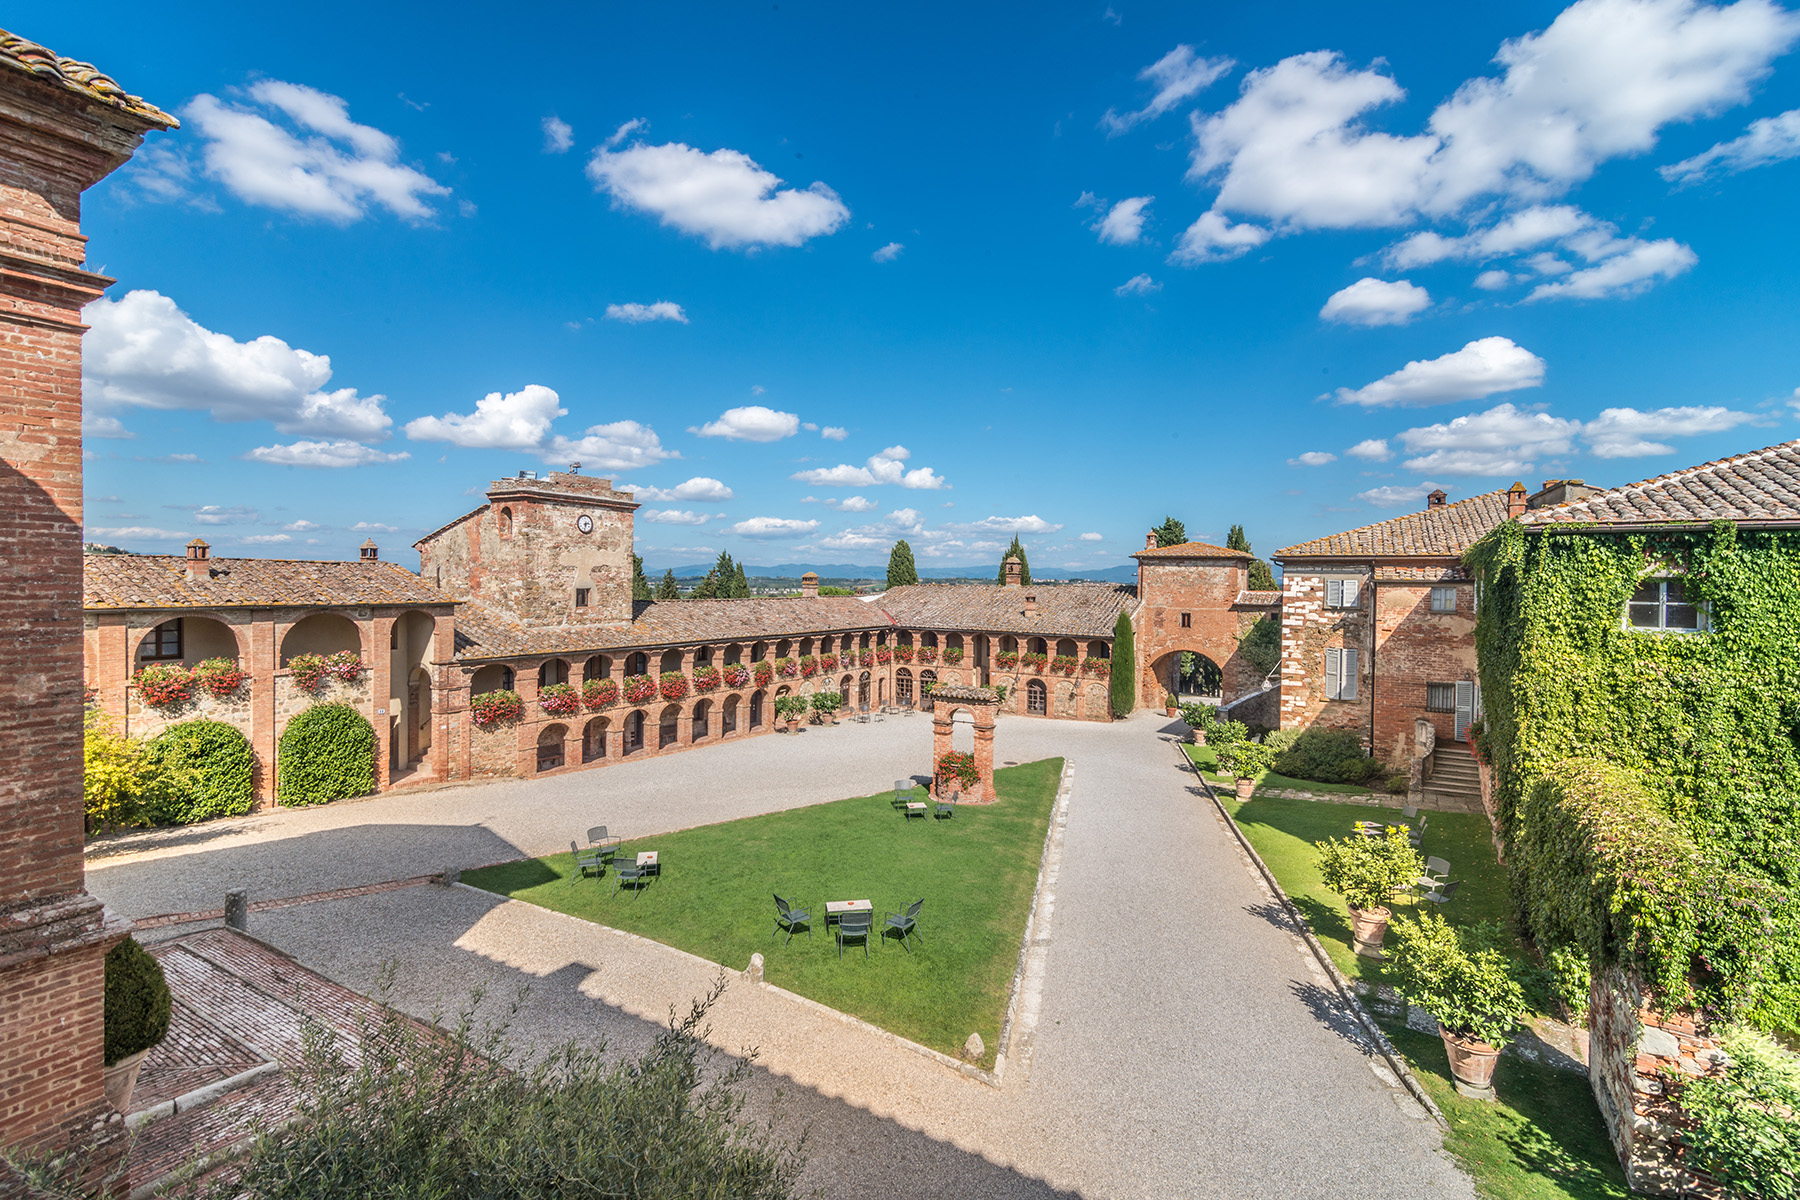 Single Family Home for Sale at Amazing Boutique Hotel near Siena Sinalunga Sinalunga, Siena, 53100 Italy